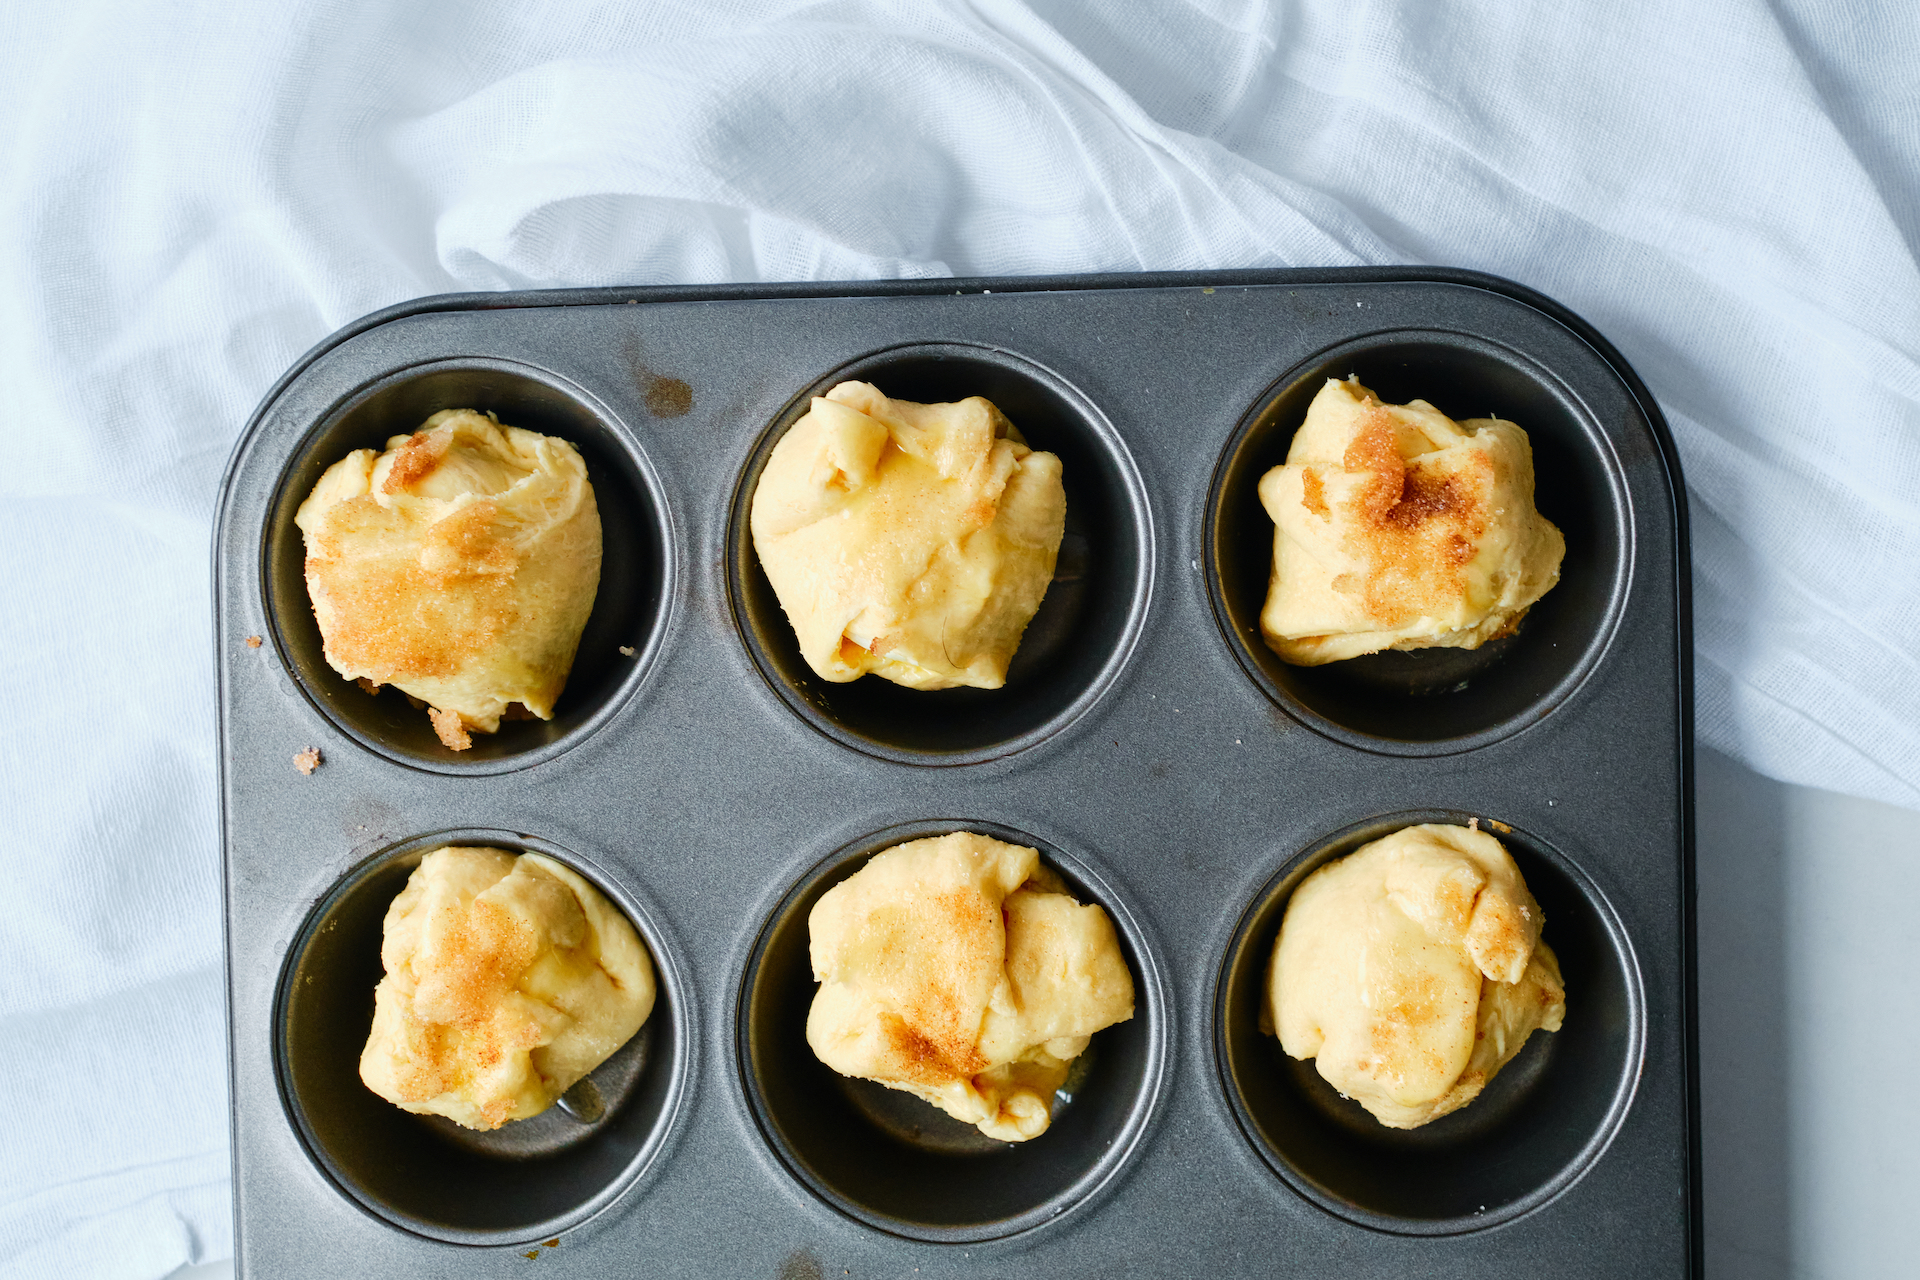 uncooked rolls sitting in a muffin tin